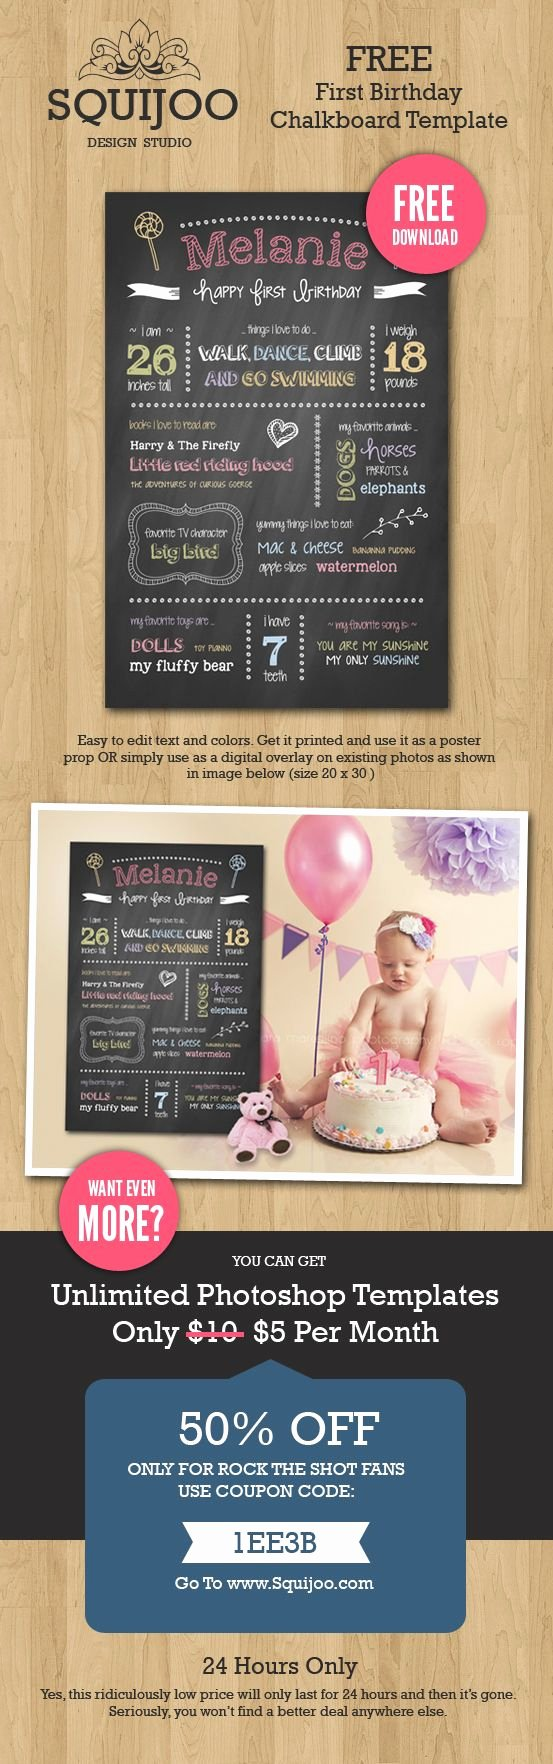 1st Birthday Chalkboard Template Luxury Birthday Chalkboard Yearly and Kid Photos On Pinterest